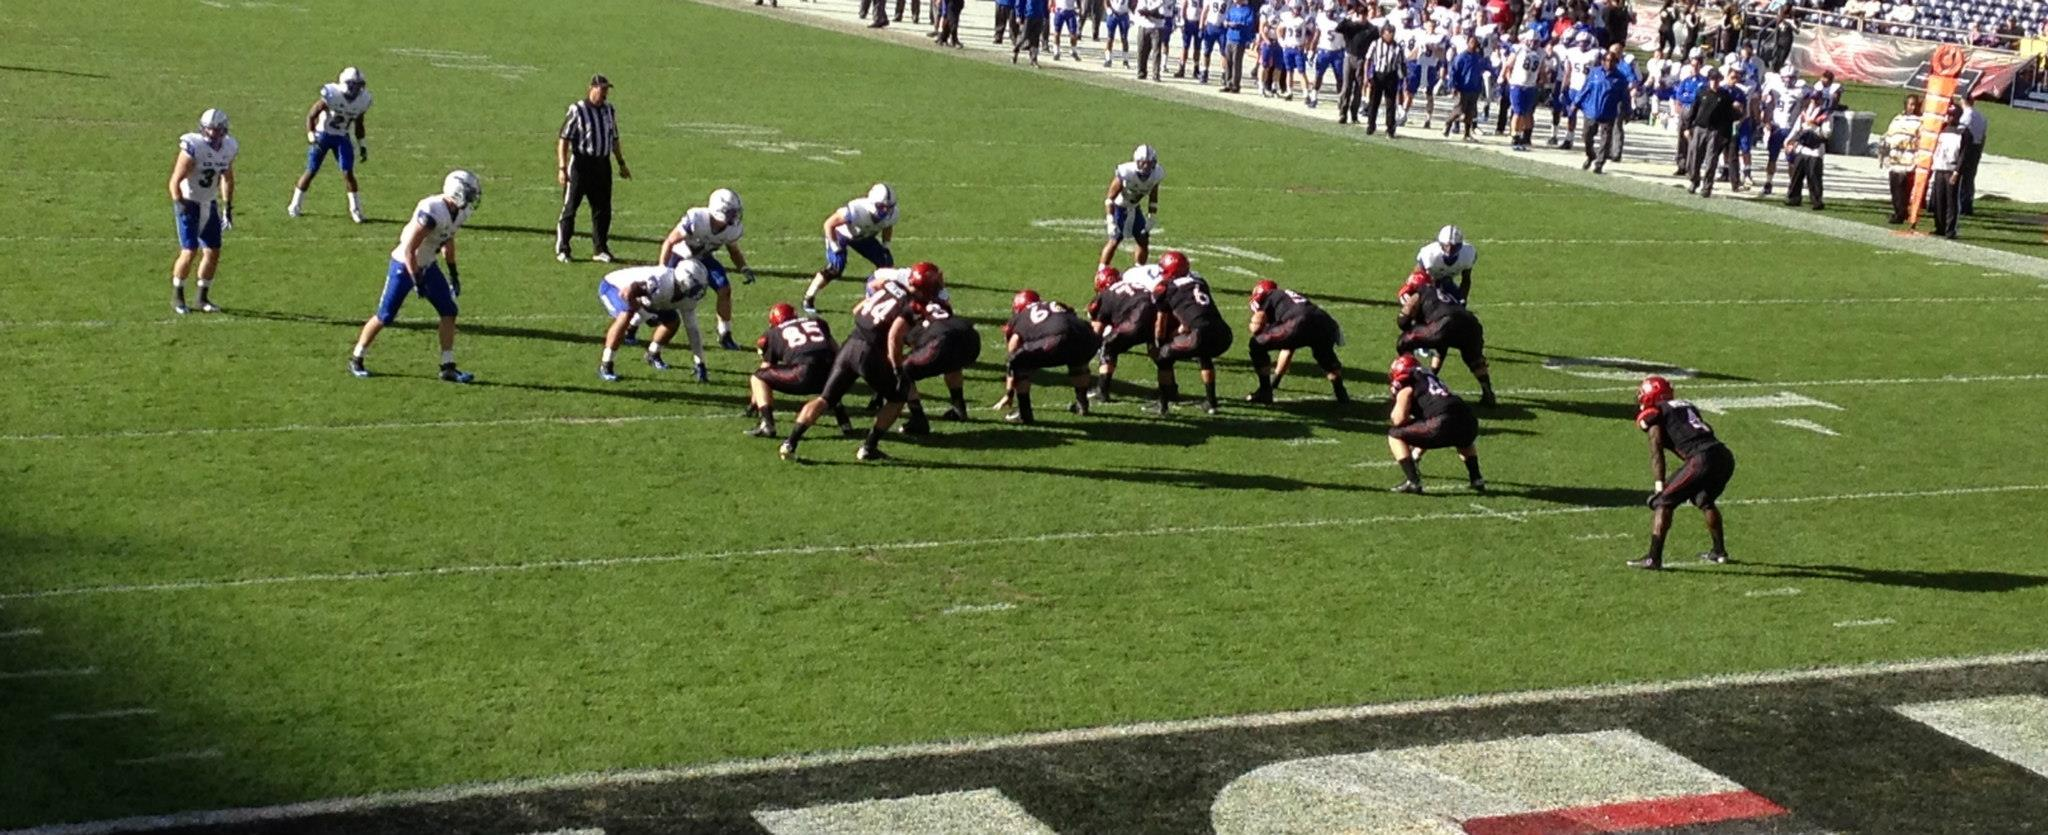 at The San Diego State vs